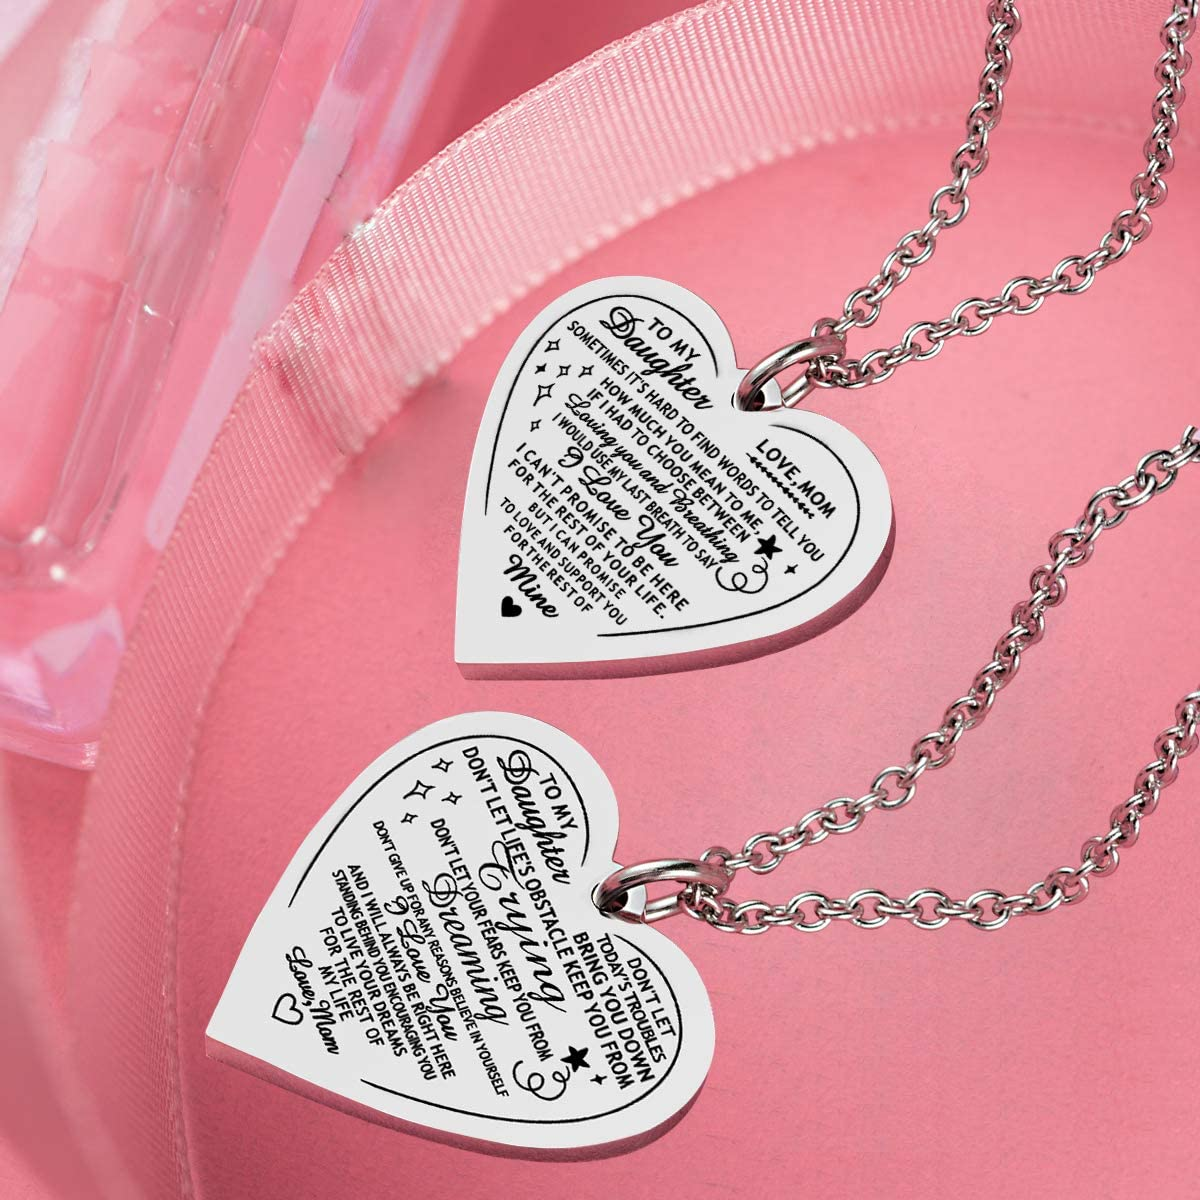 seensea Daughter Heart Pendant Necklace You Are Braver Than You Believe Engraved Motivational Message Stainless Steel Jewelry Gifts from Mom Dad